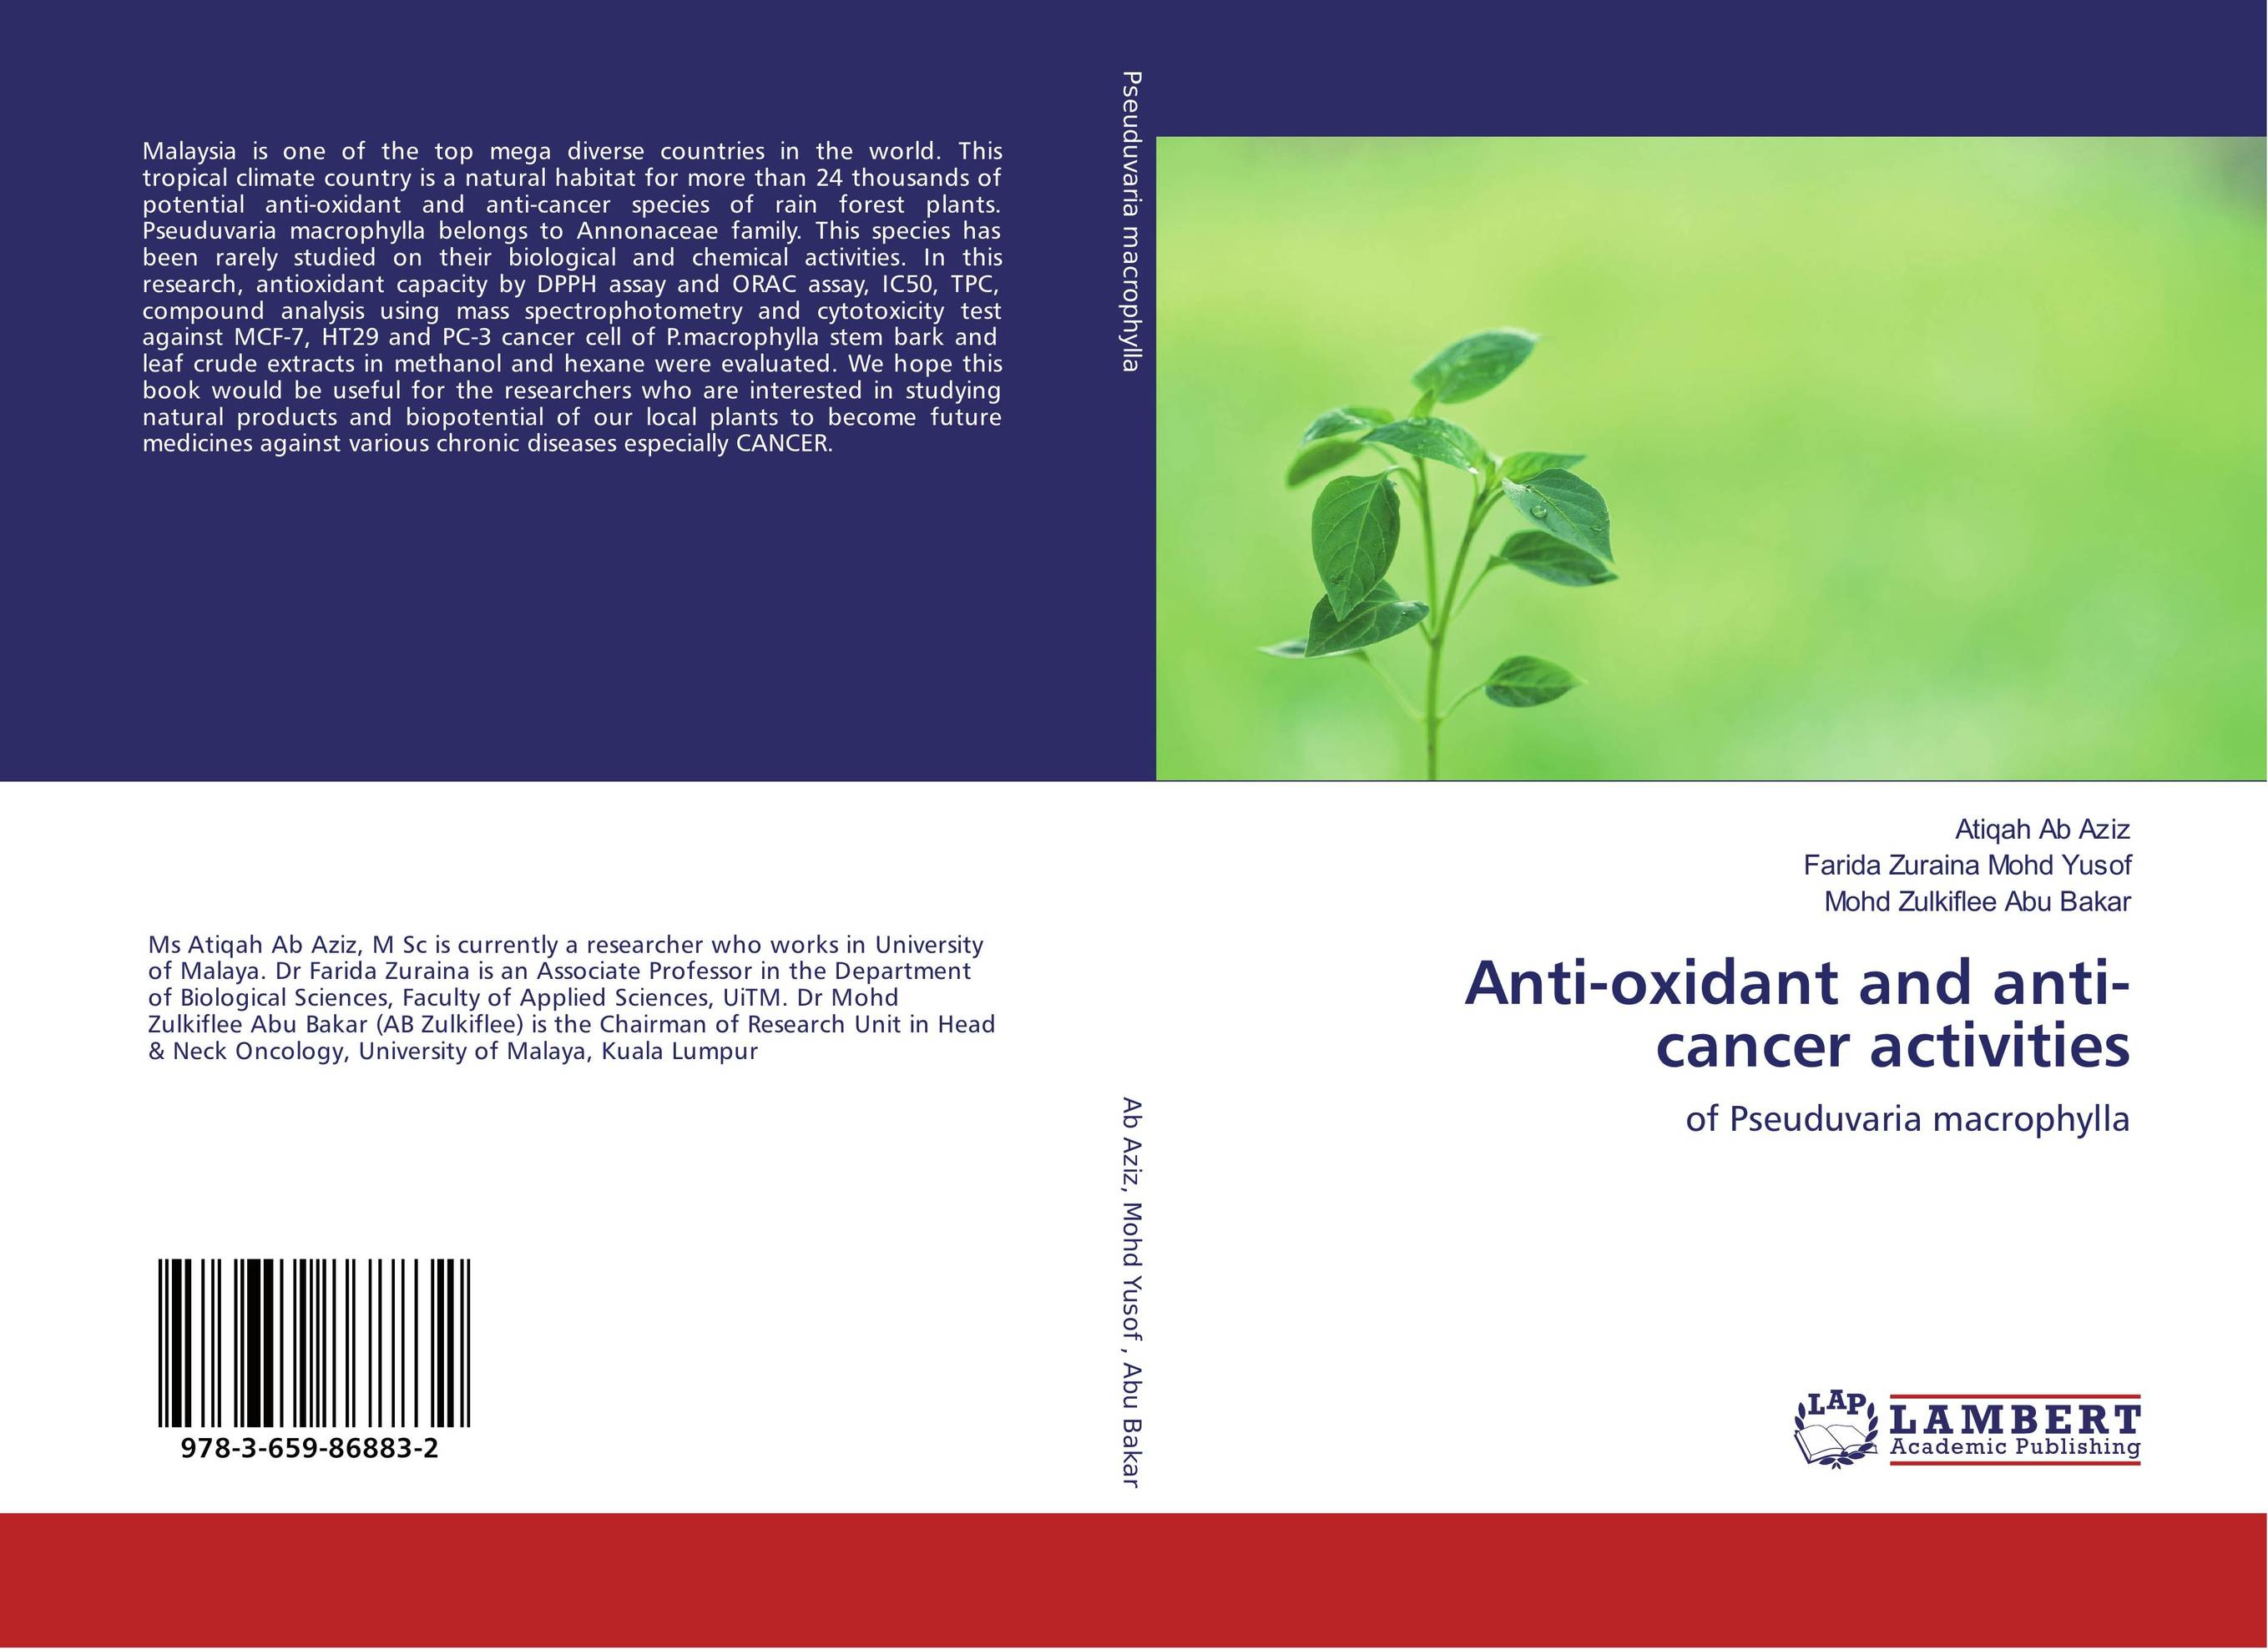 Anti-oxidant and anti-cancer activities theivendren panneer selvam s n mamledesai and fadte pooja rajaram alias fotto importance of quinazoline against cancer